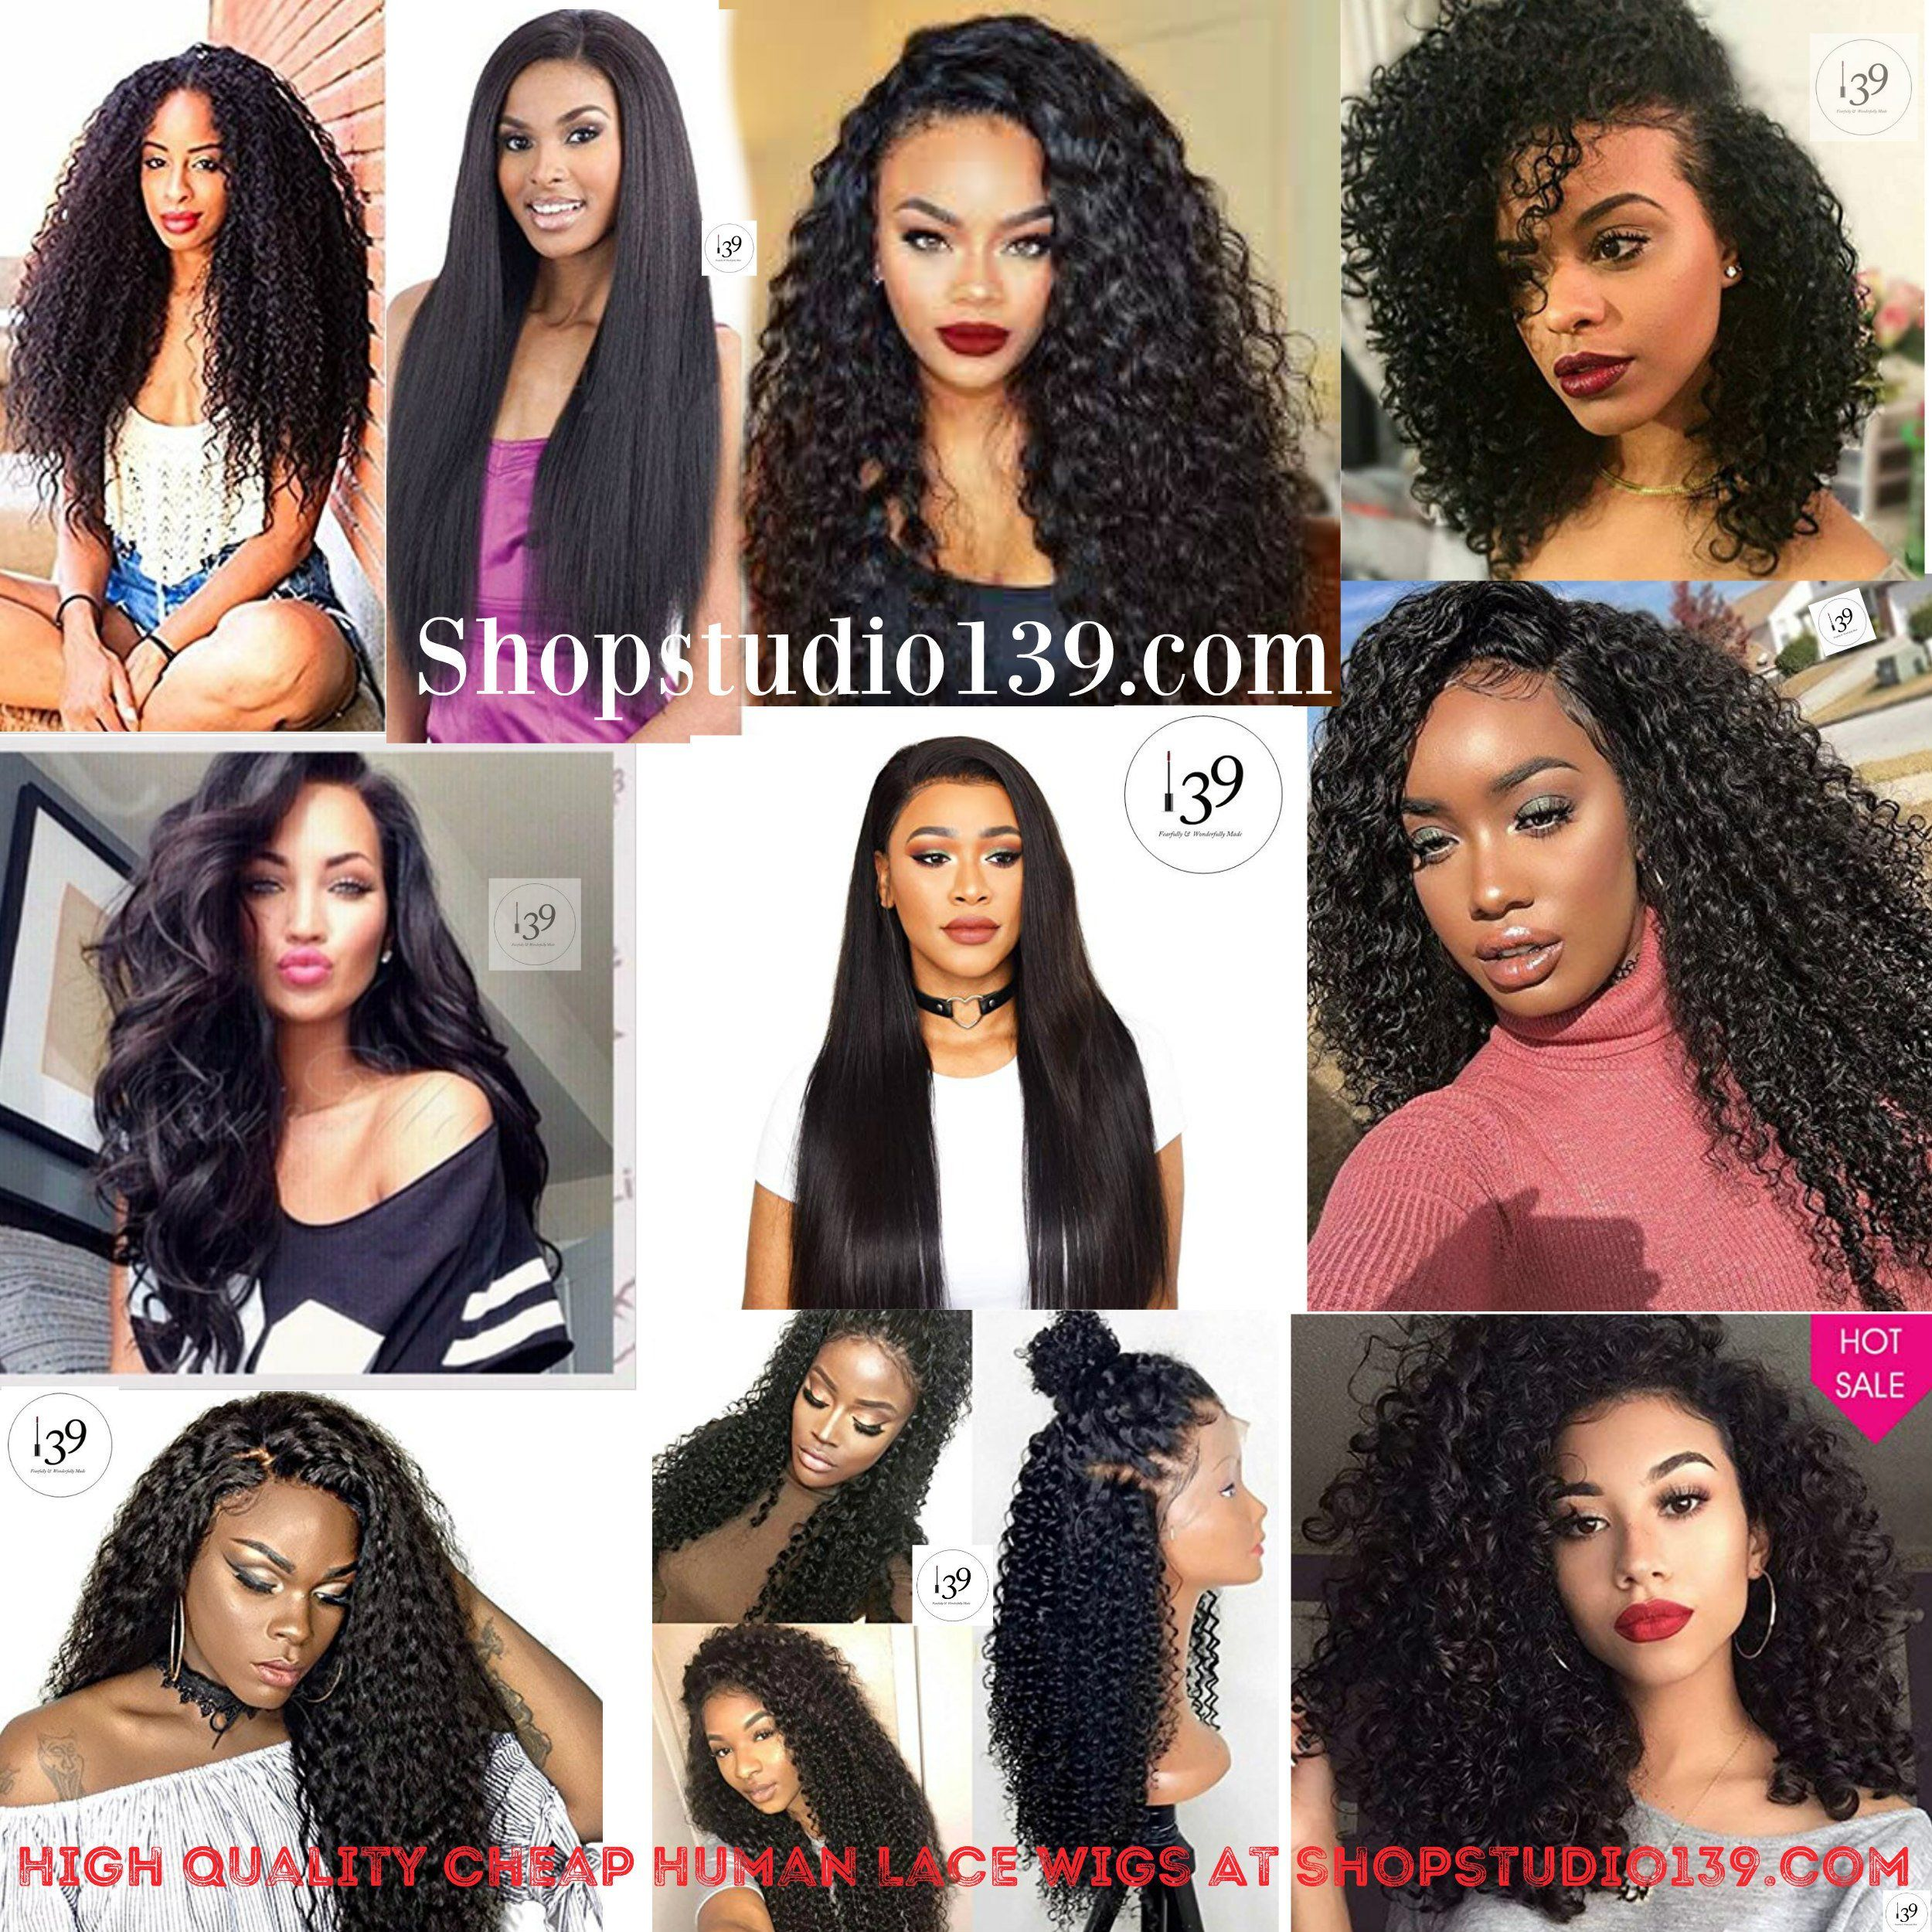 3a858438a Wowfactor Slayqueen Lace frontal Cheap High Quality Brazilian Virgin 100  percent human hair natural color Wet